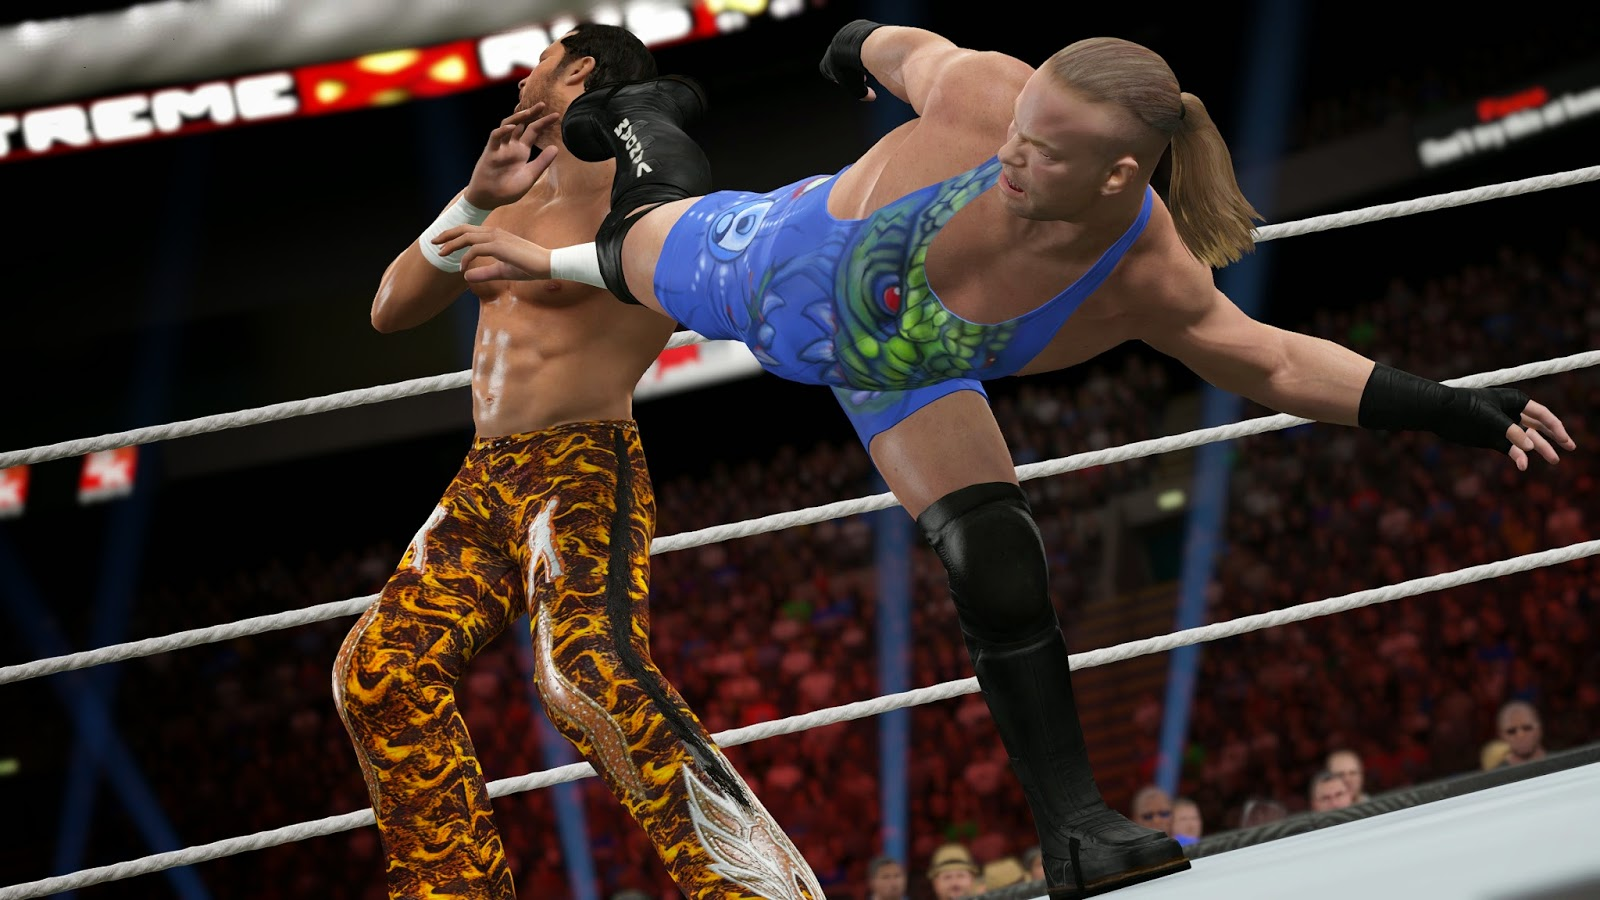 wwe 2k15 download free pc game full version